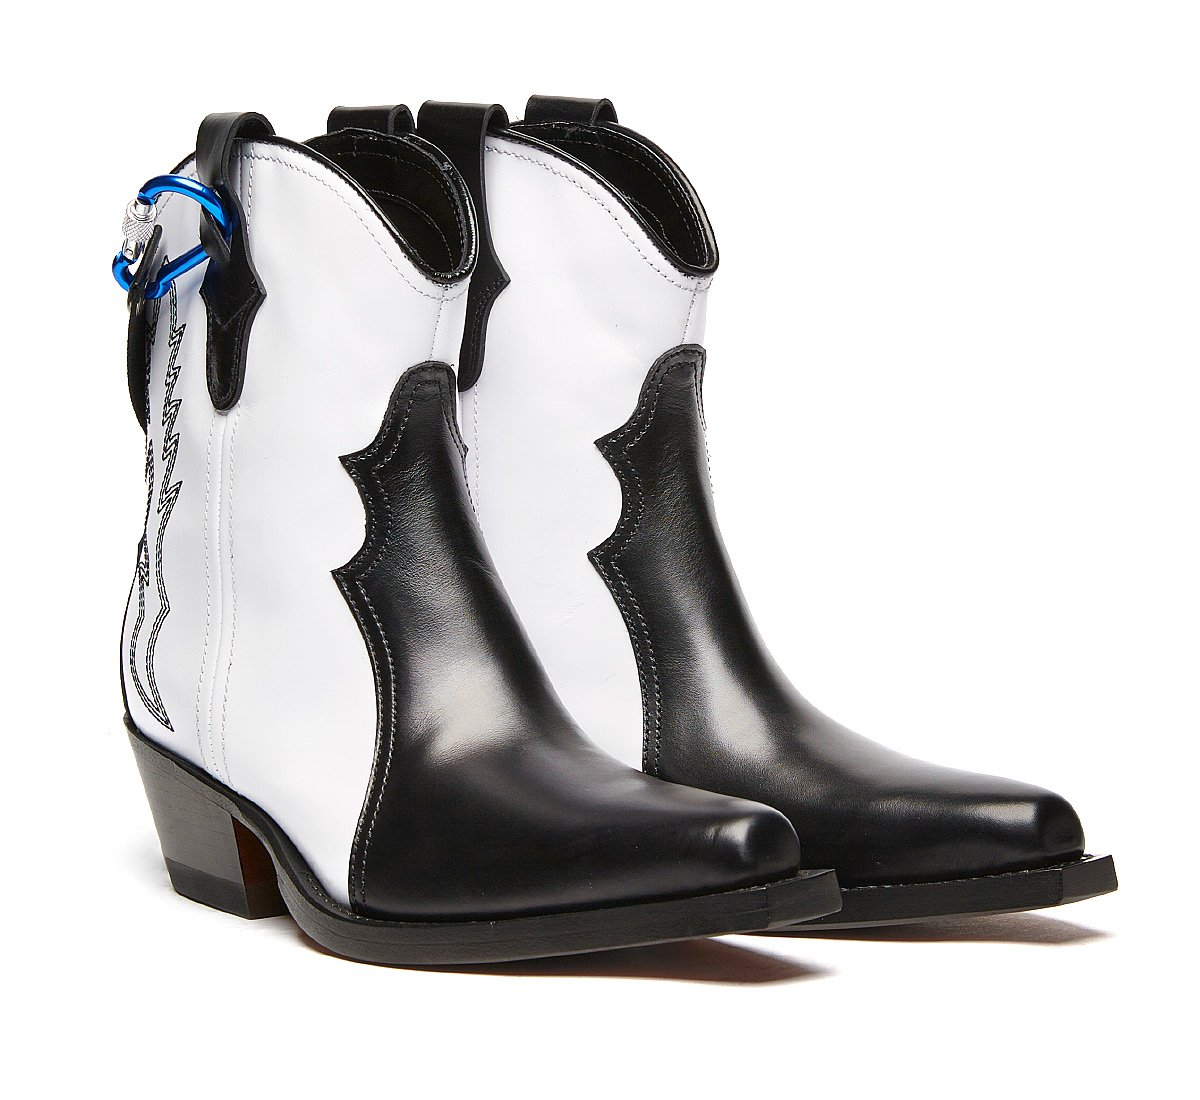 Barracuda Texan boots in luxury calf leather